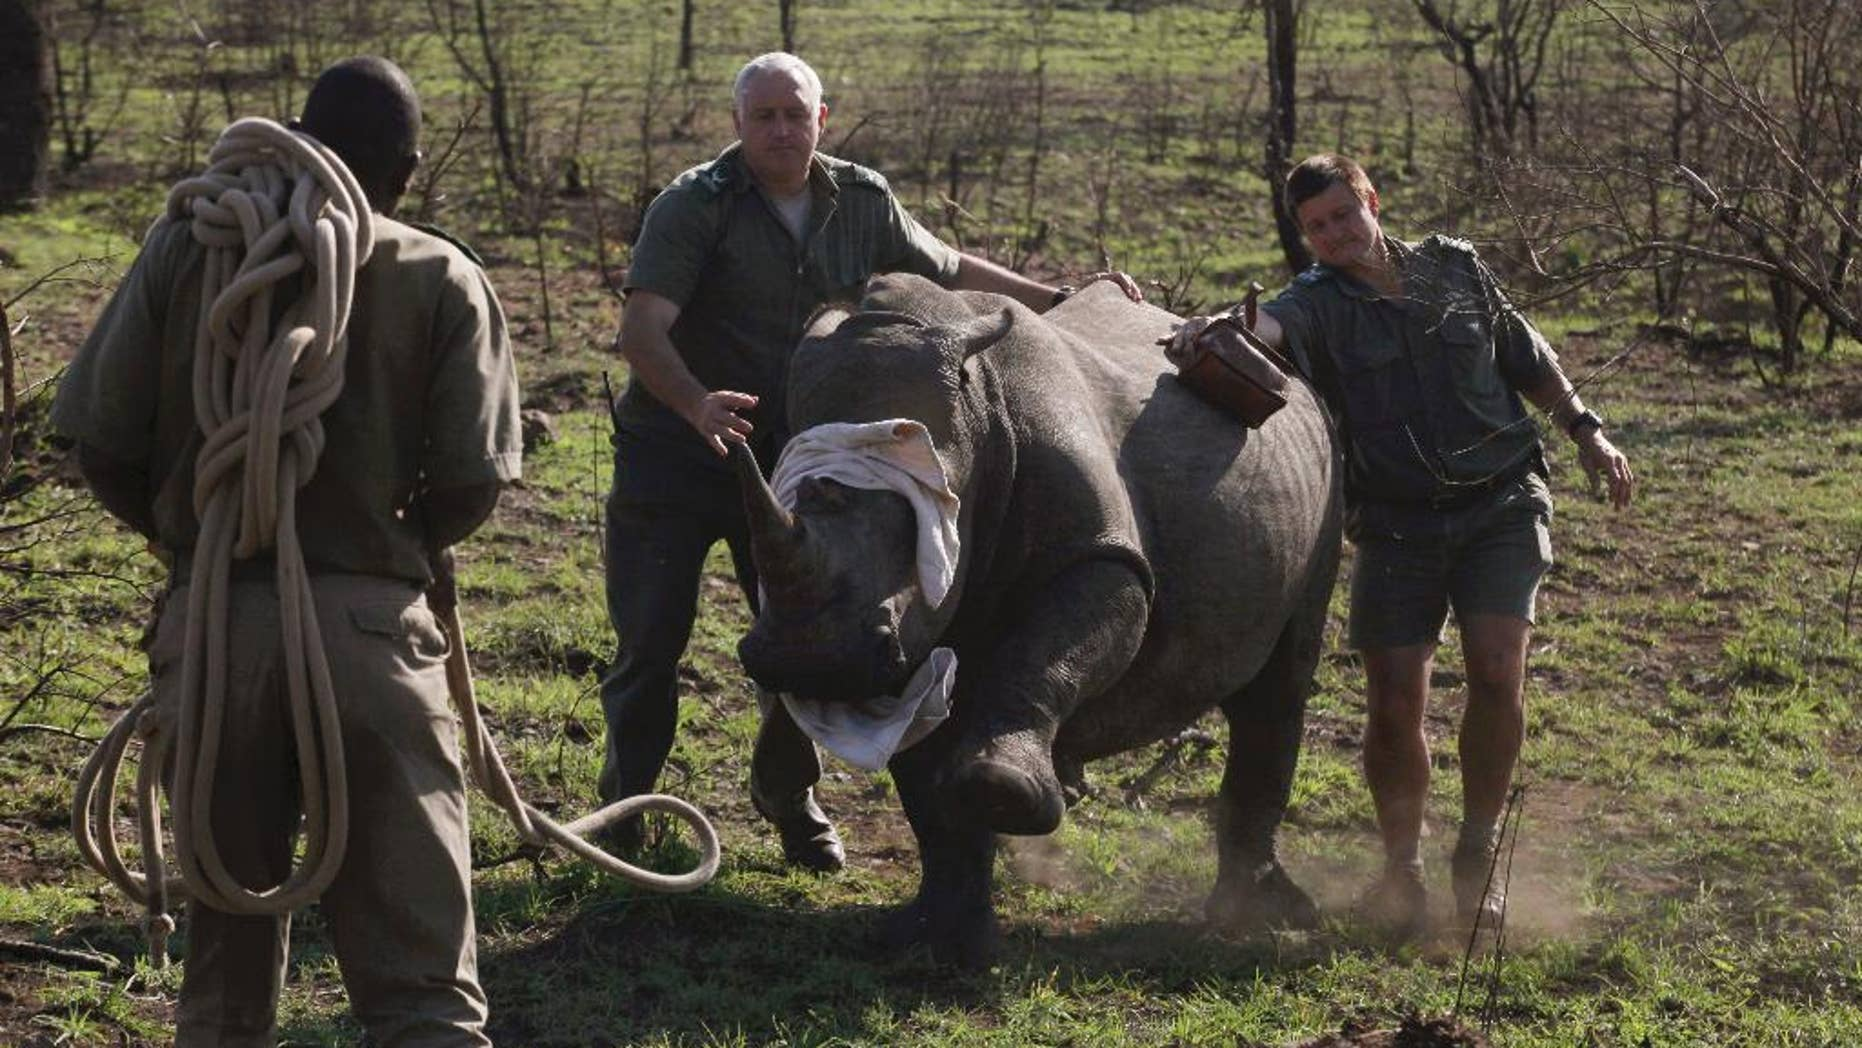 FILE - In this file photo takentaken Thursday, Nov. 20, 2014 a darted rhino is blind-folded before being grounded for skin and blood samples to be taken, and microchipped, near Skukuza, South Africa, before being transported by truck to an area hopefully safe from poachers in a bid to cut down on the numbers killed by poachers. Some conservationists believe that the reported numbers of rhinos killed could be much higher than recorded. (AP Photo/Denis Farrell, File)